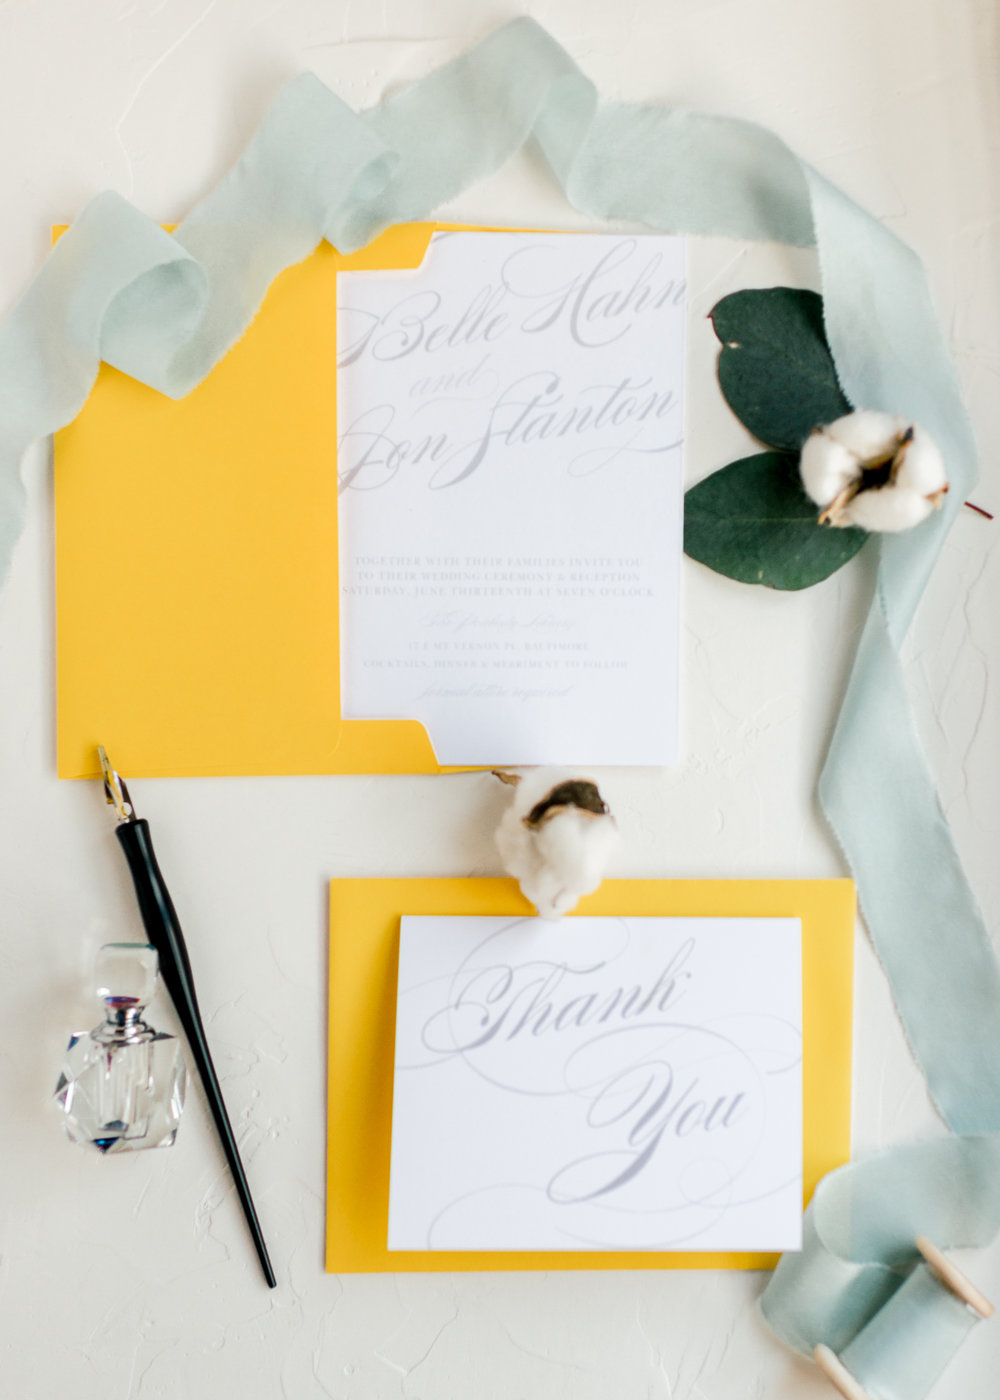 Basic Invite - Design Custom Wedding Invites Online